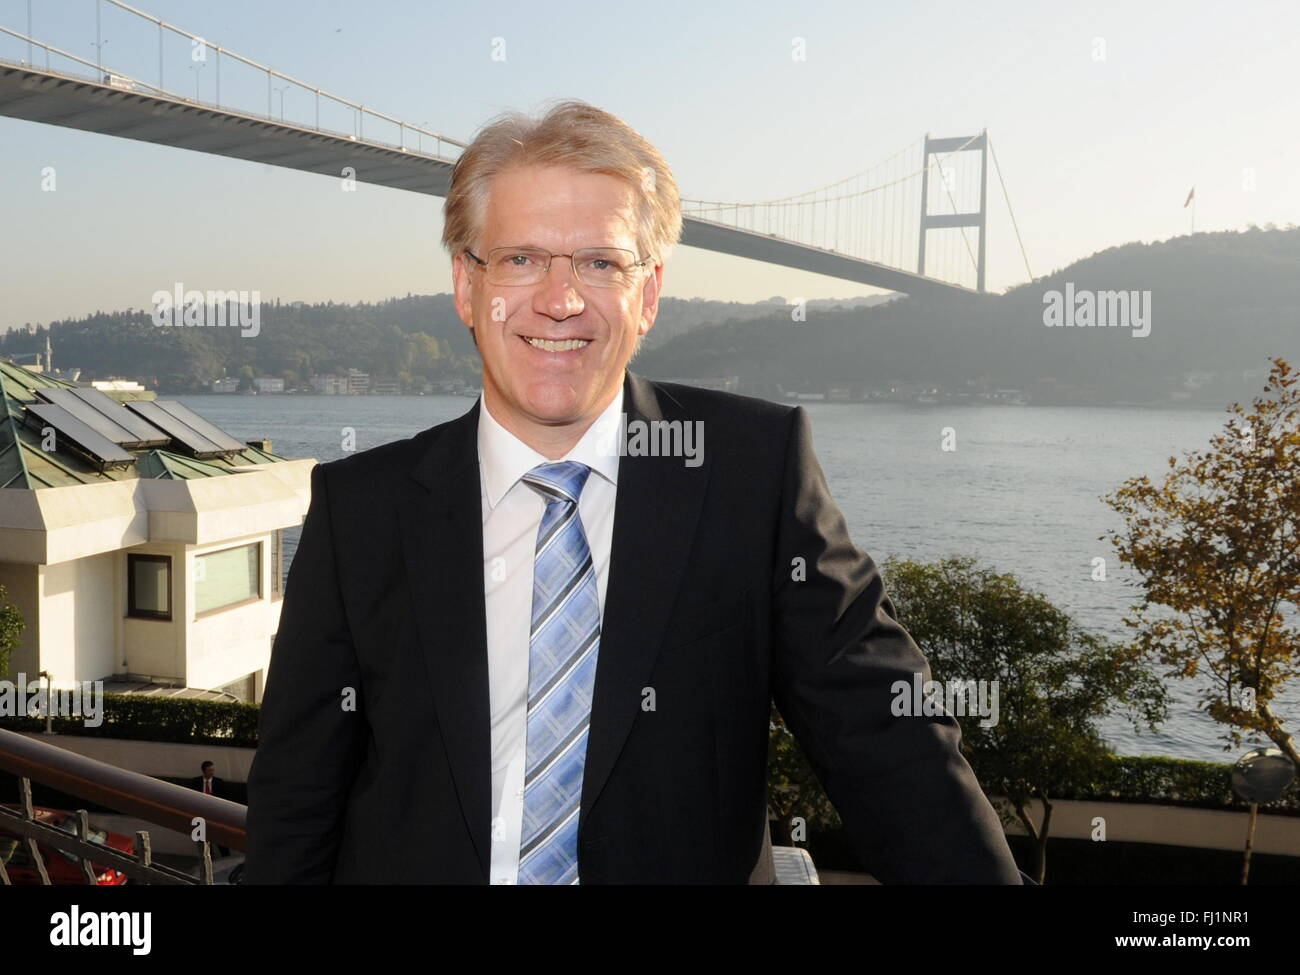 FILE - A file picture dated 17 October 2012 depicts Dieter Manz, CEO of Manz AG, a company that produces machine - Stock Image